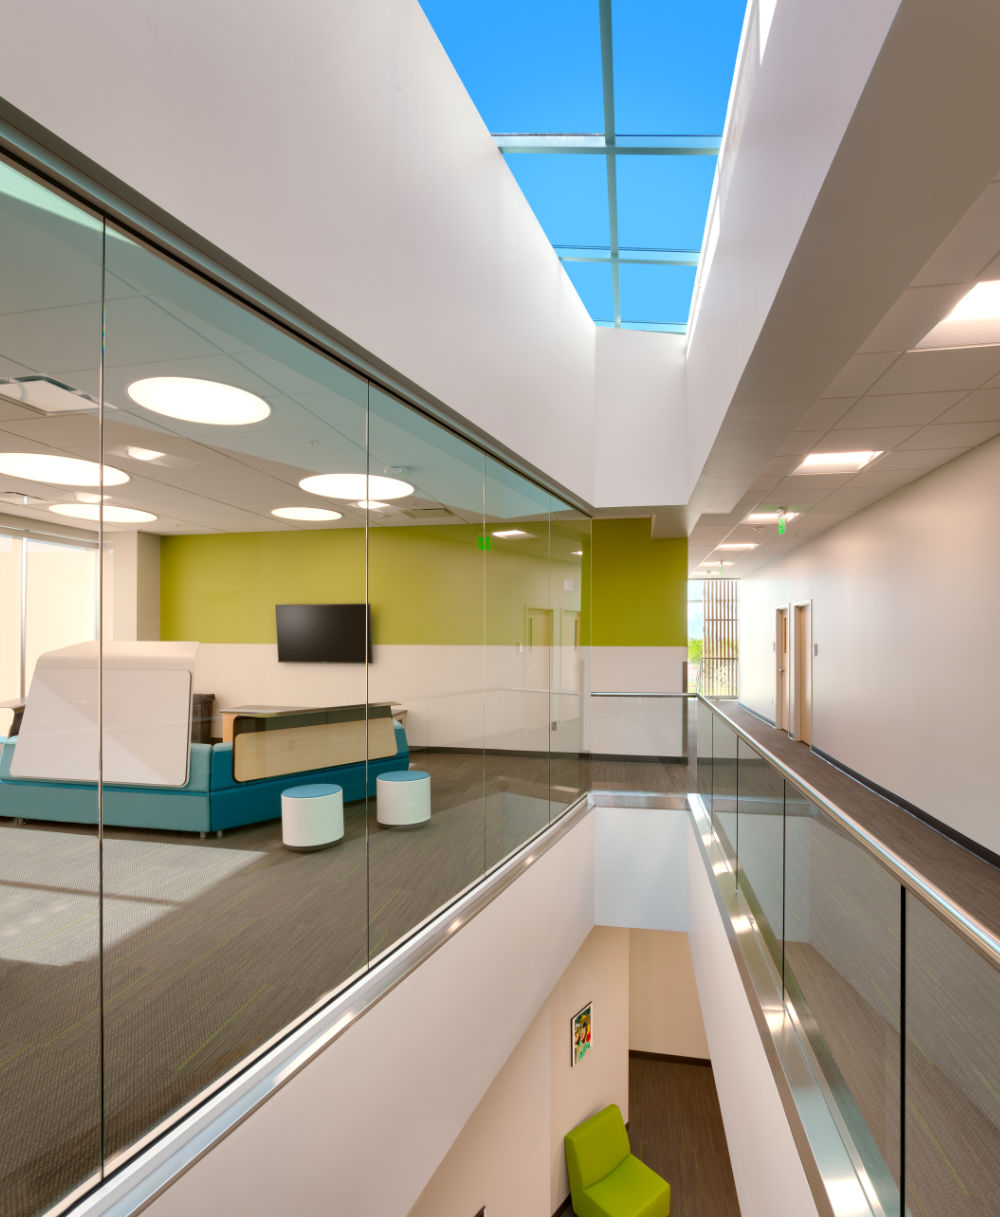 Higher-Education-Architecture-Utah-UVU-Autism-Center-Stair-Skylight